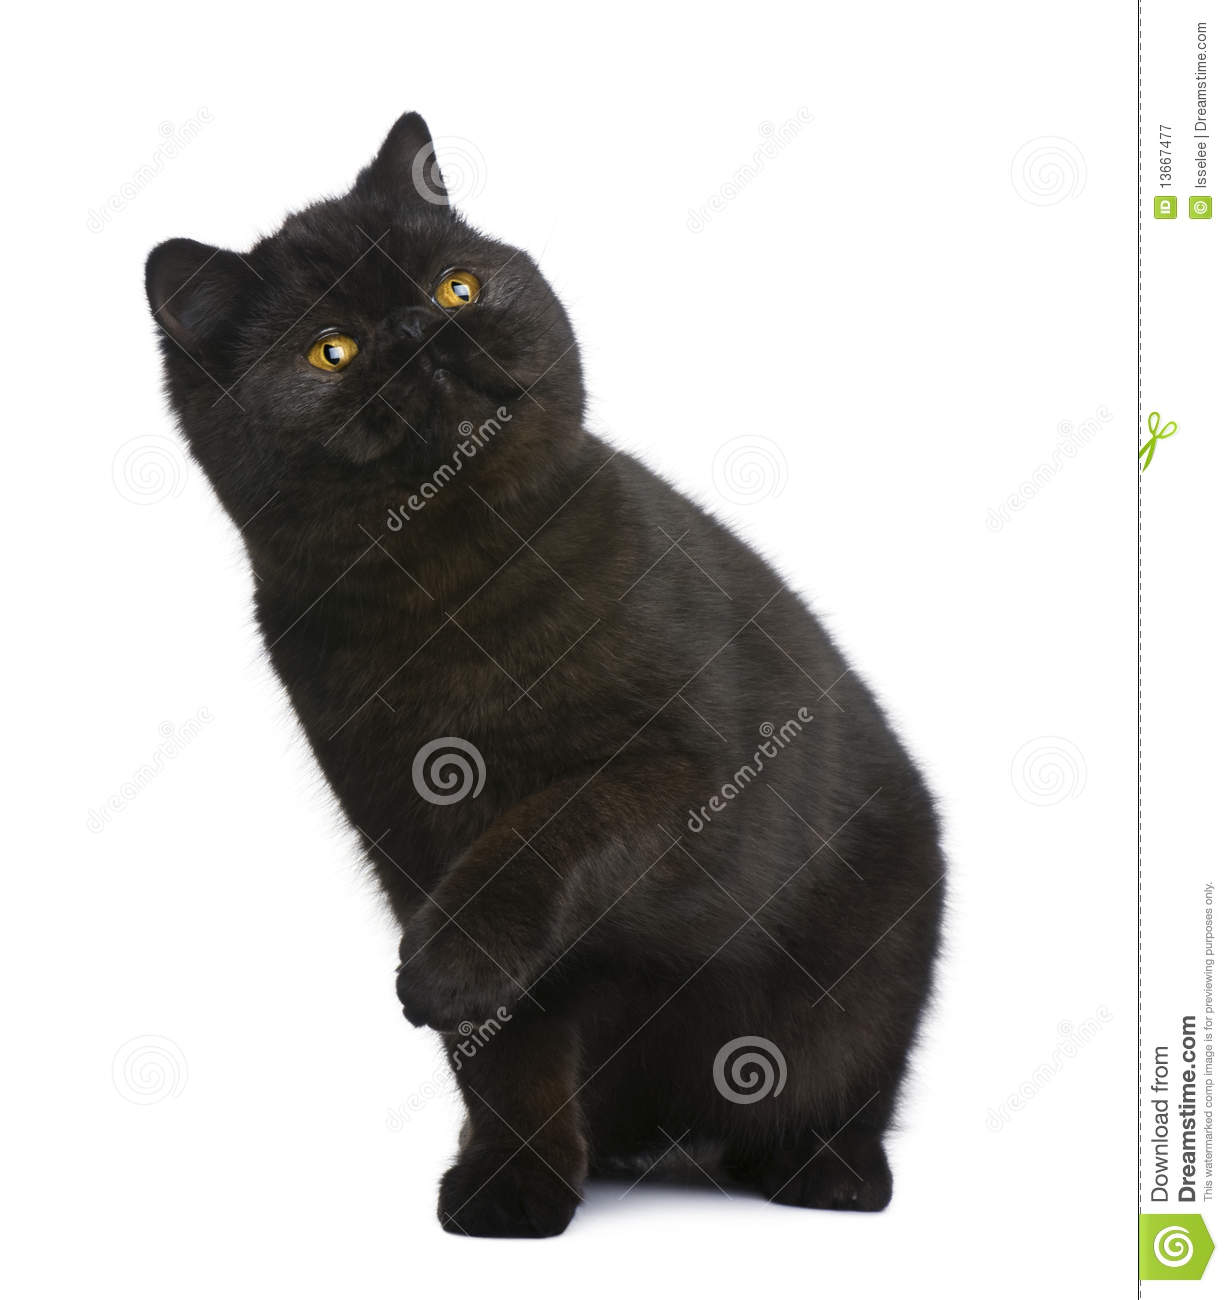 Exotic shorthair cat, 8 months old